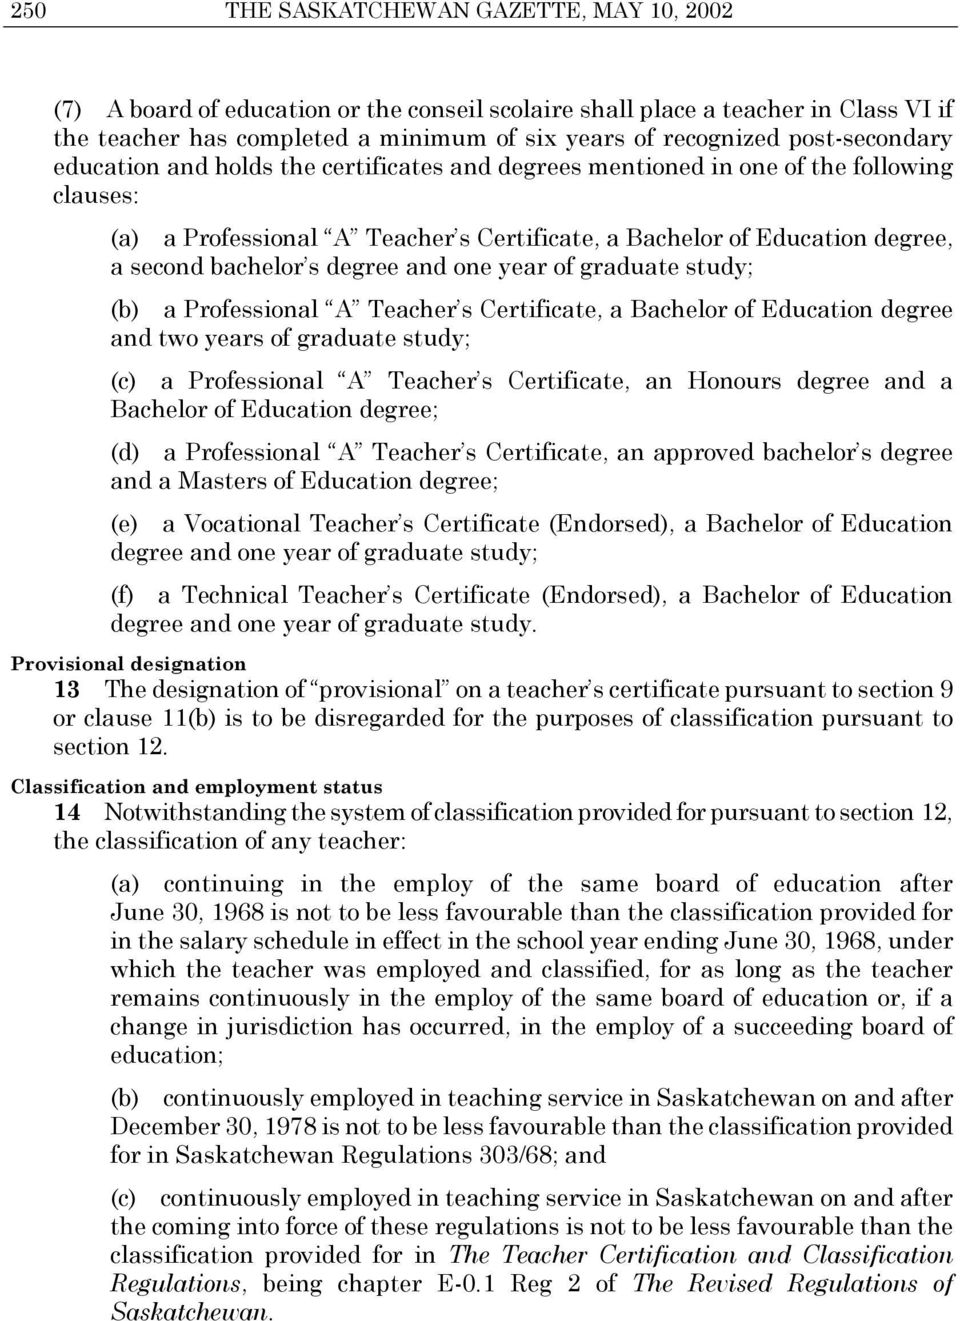 bachelor s degree and one year of graduate study; (b) a Professional A Teacher s Certificate, a Bachelor of Education degree and two years of graduate study; (c) a Professional A Teacher s